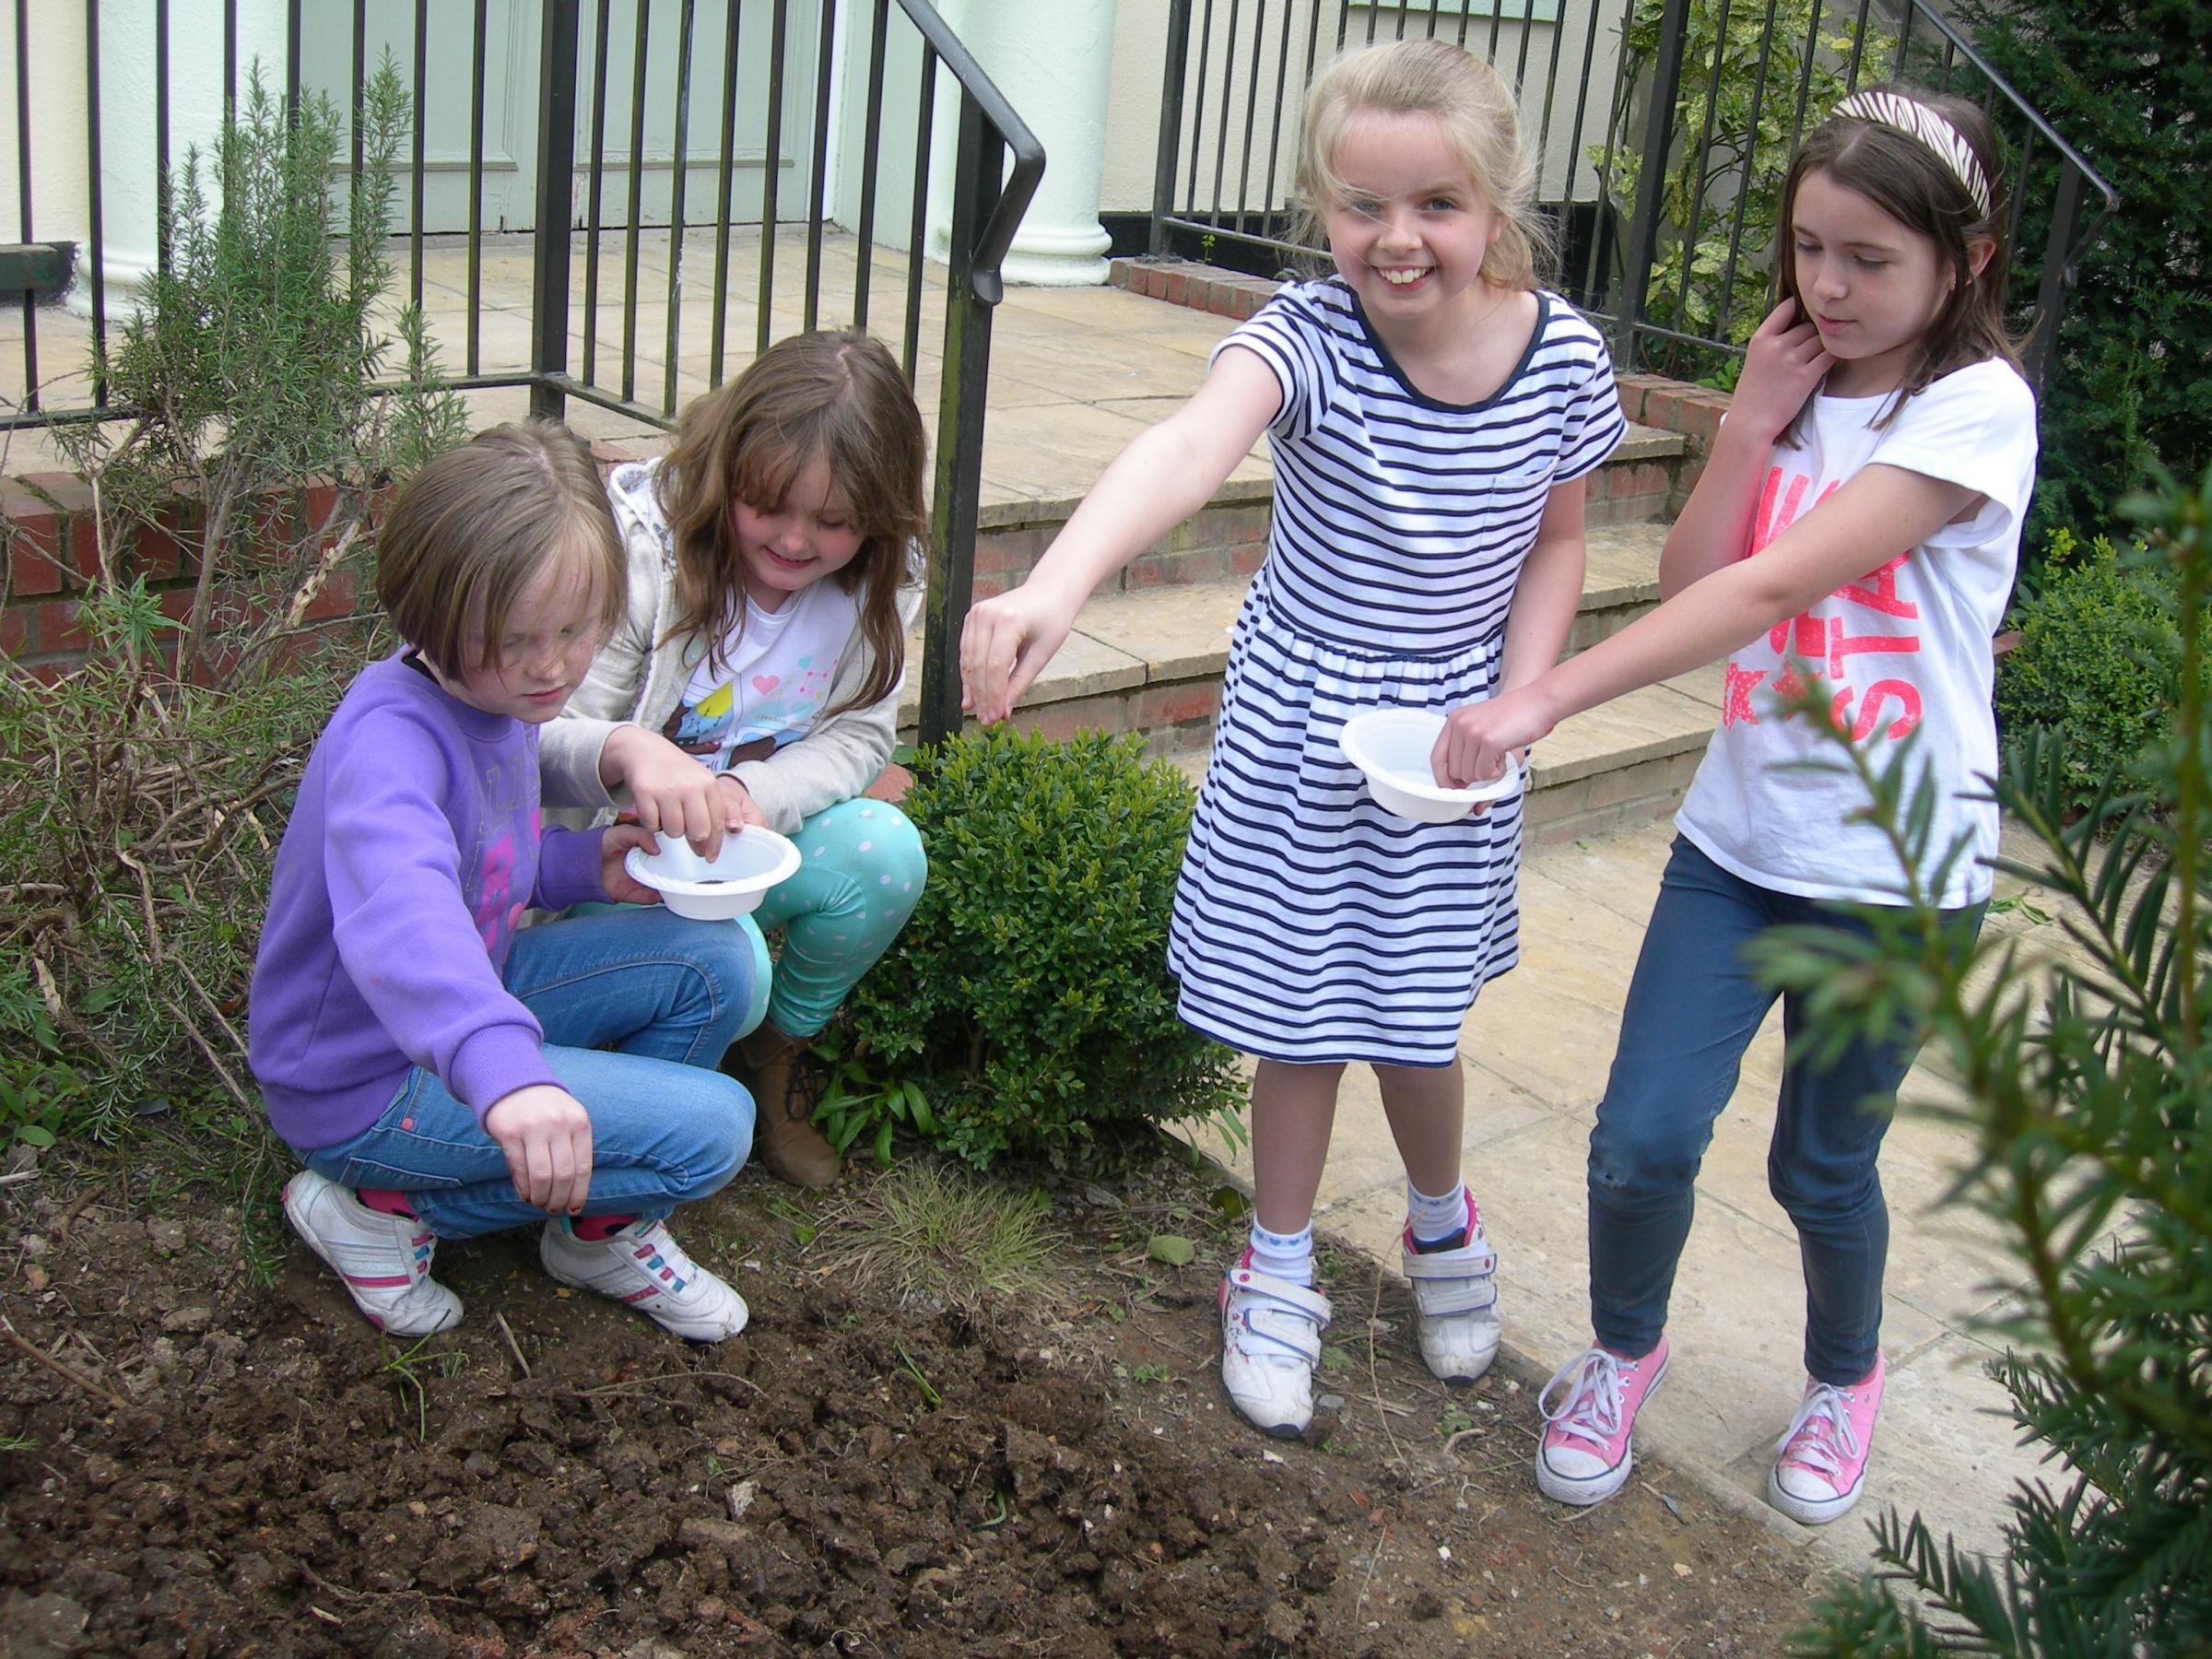 Andover United Reformed Church and 1st Andover Girls' Brigade plants poppies for peace and remembrance